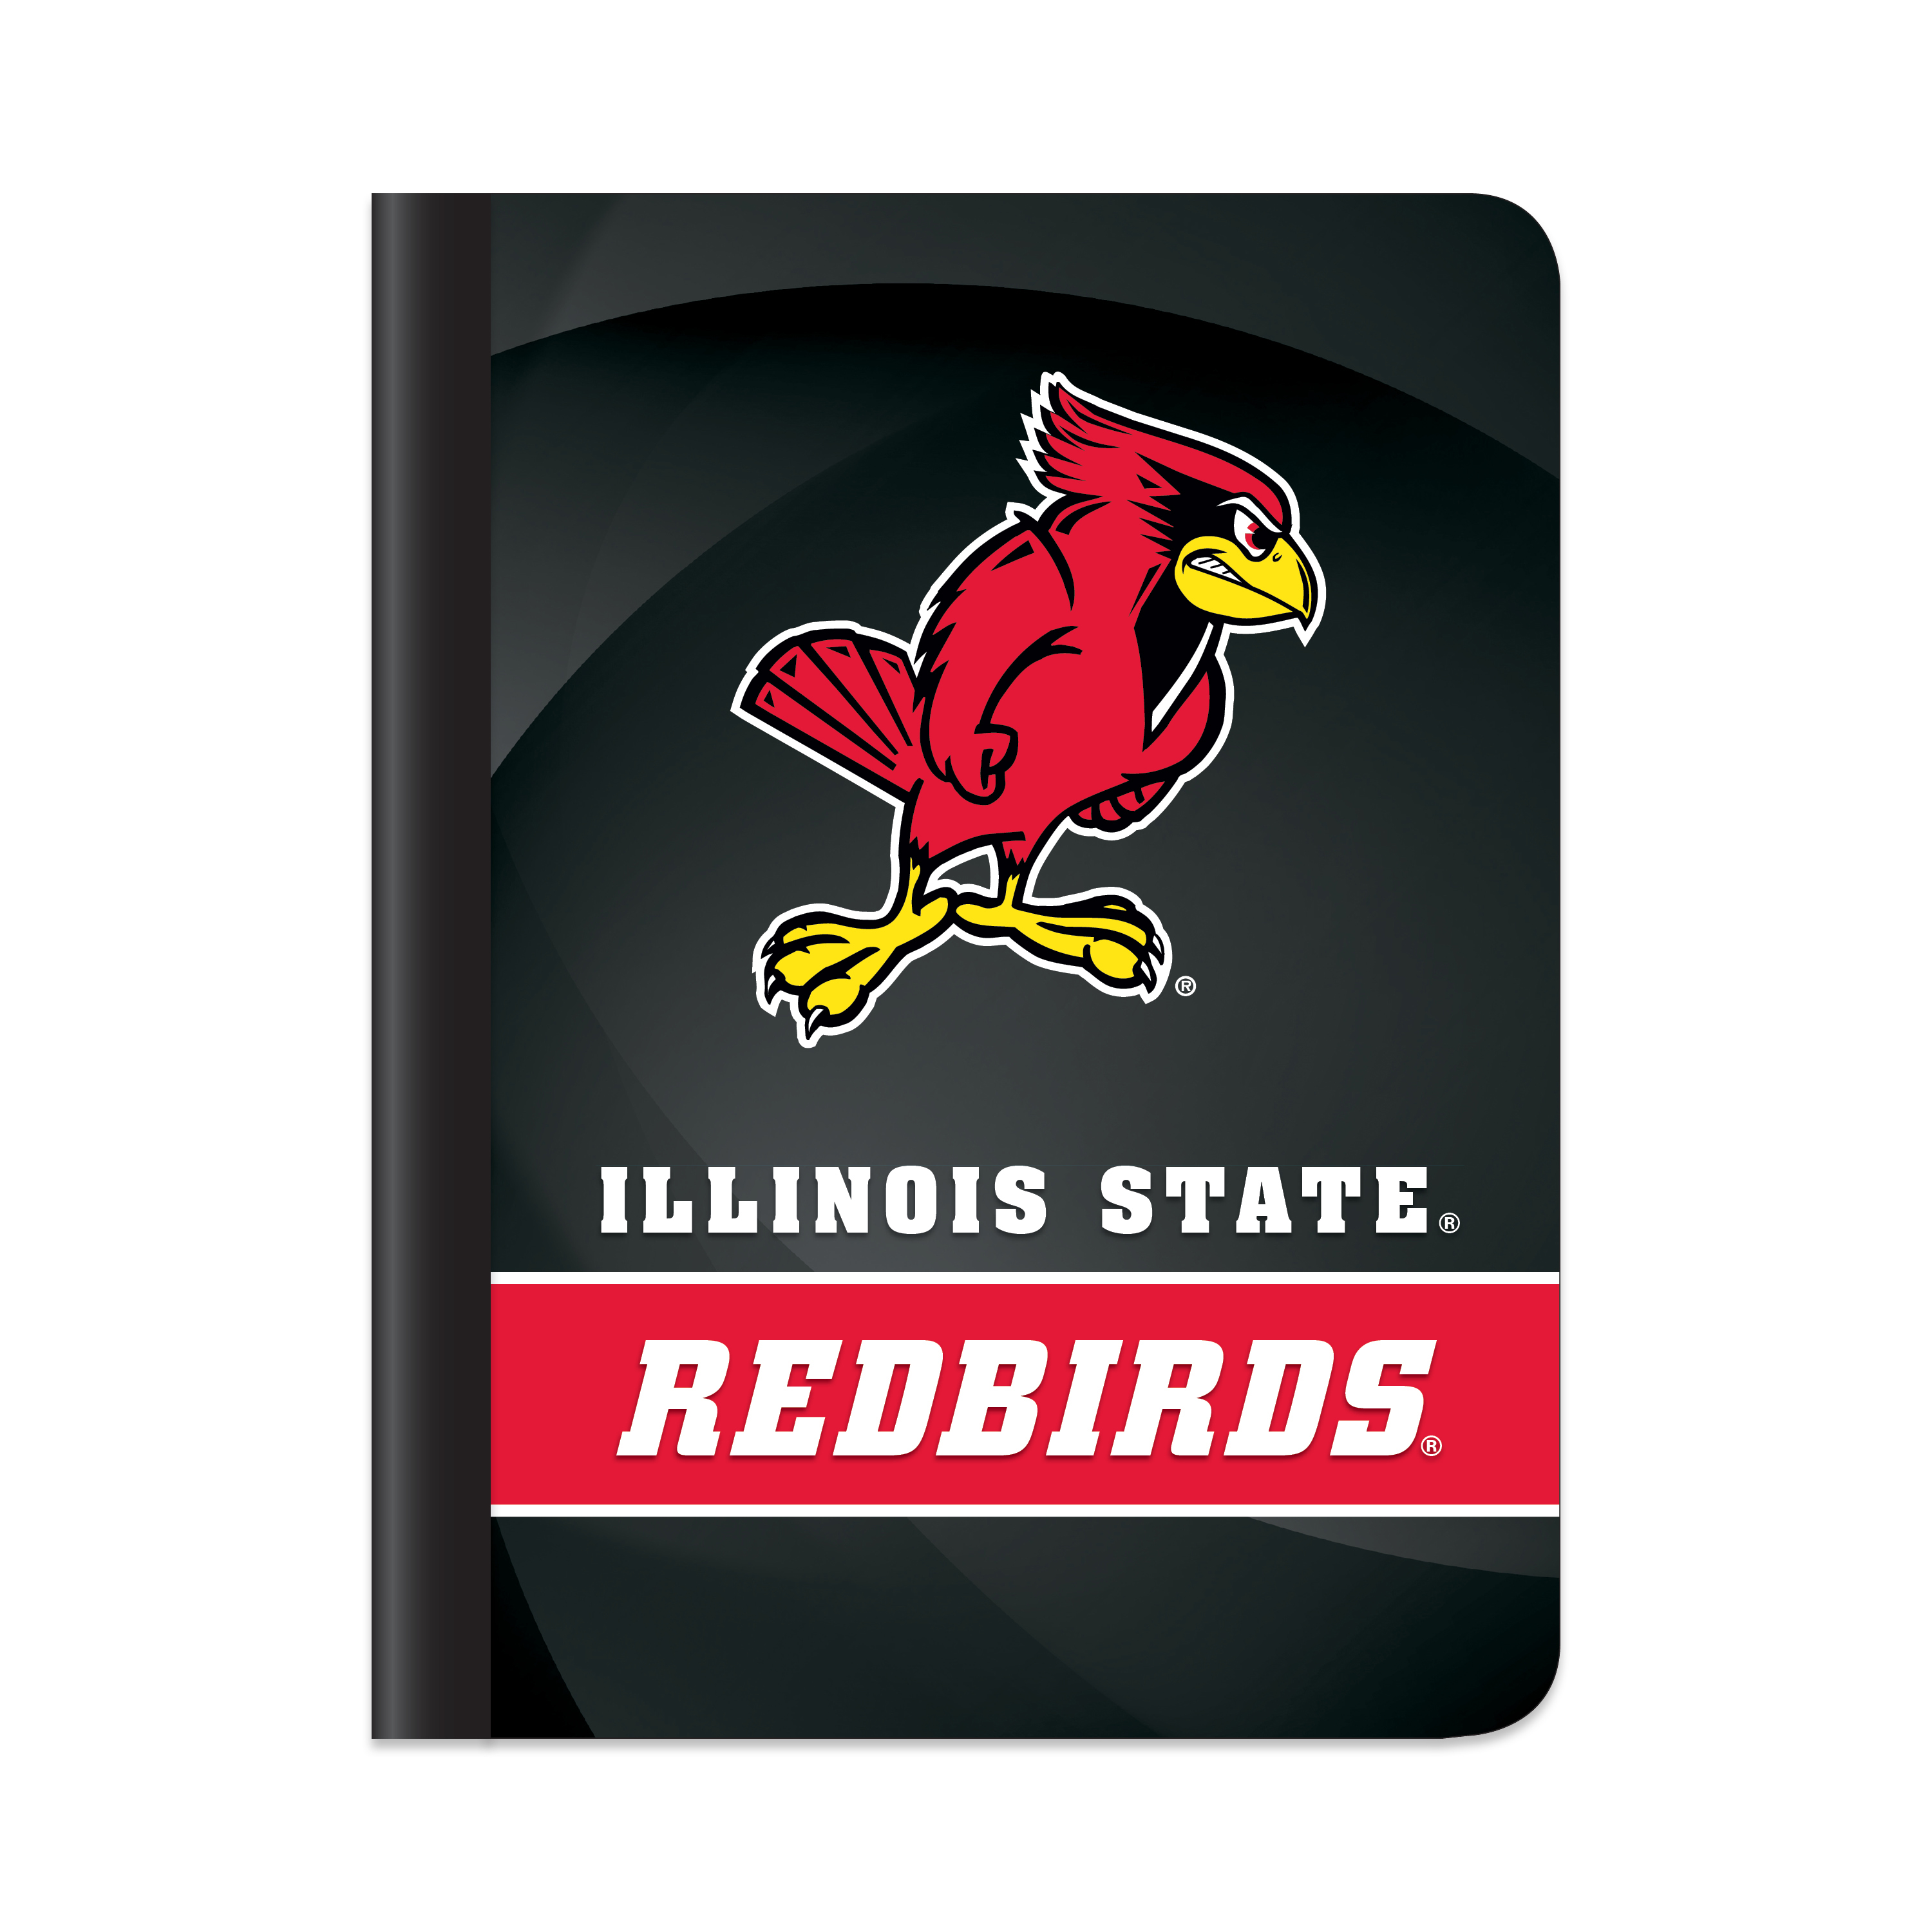 "NCAA Illinois State Redbirds Composition Book, 7.5"" by 9.75"", 100 Sheets, College Rule"